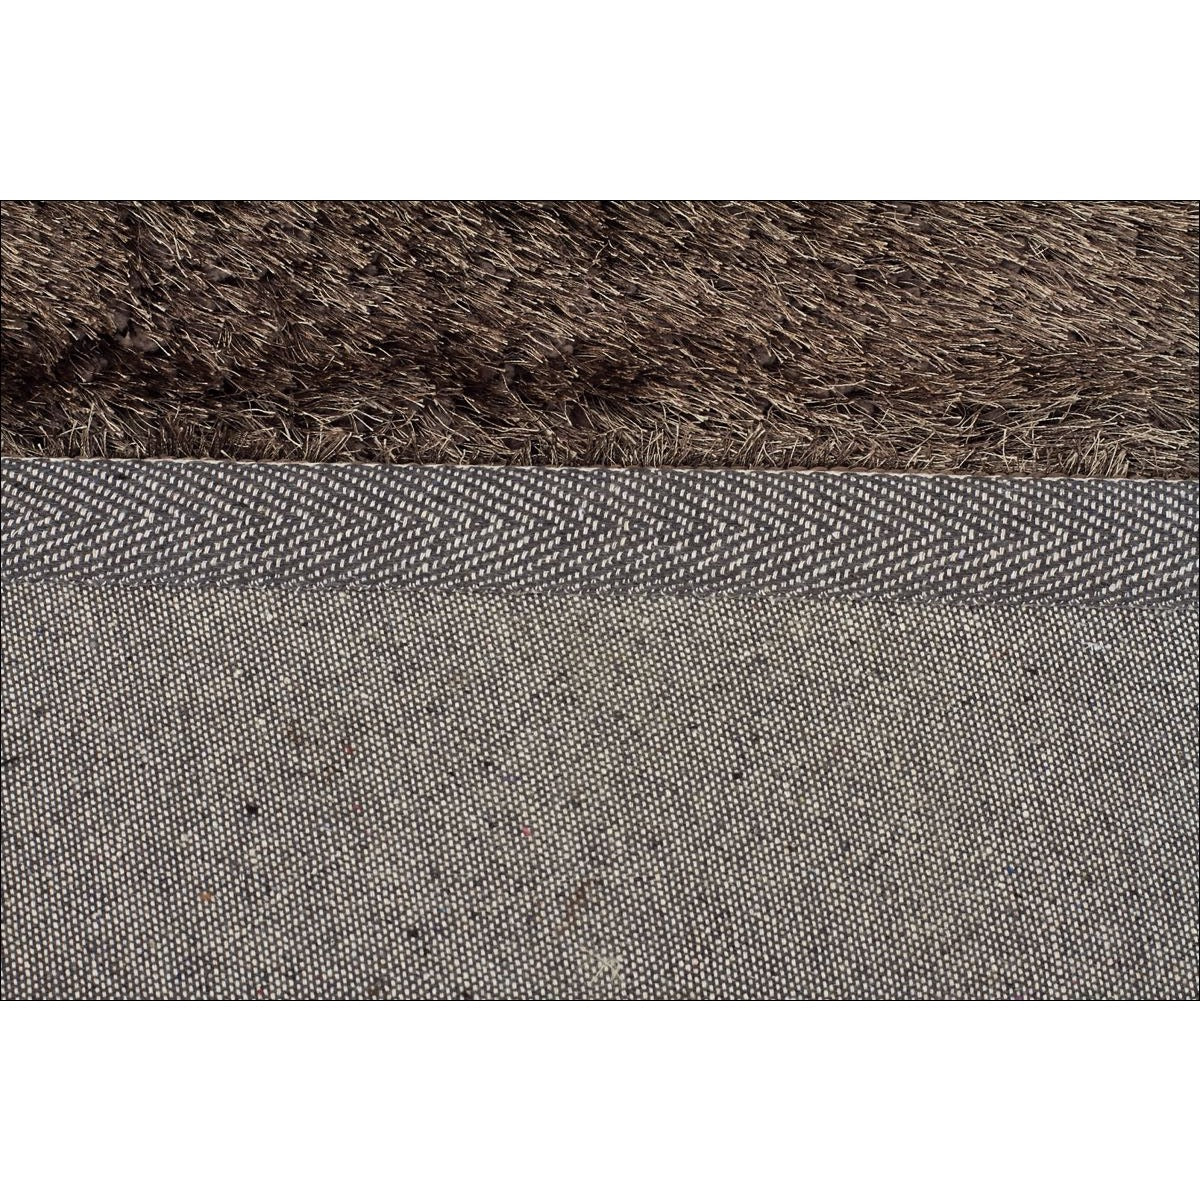 shag design silver ft area made hand products with rug shaggy pad brown x